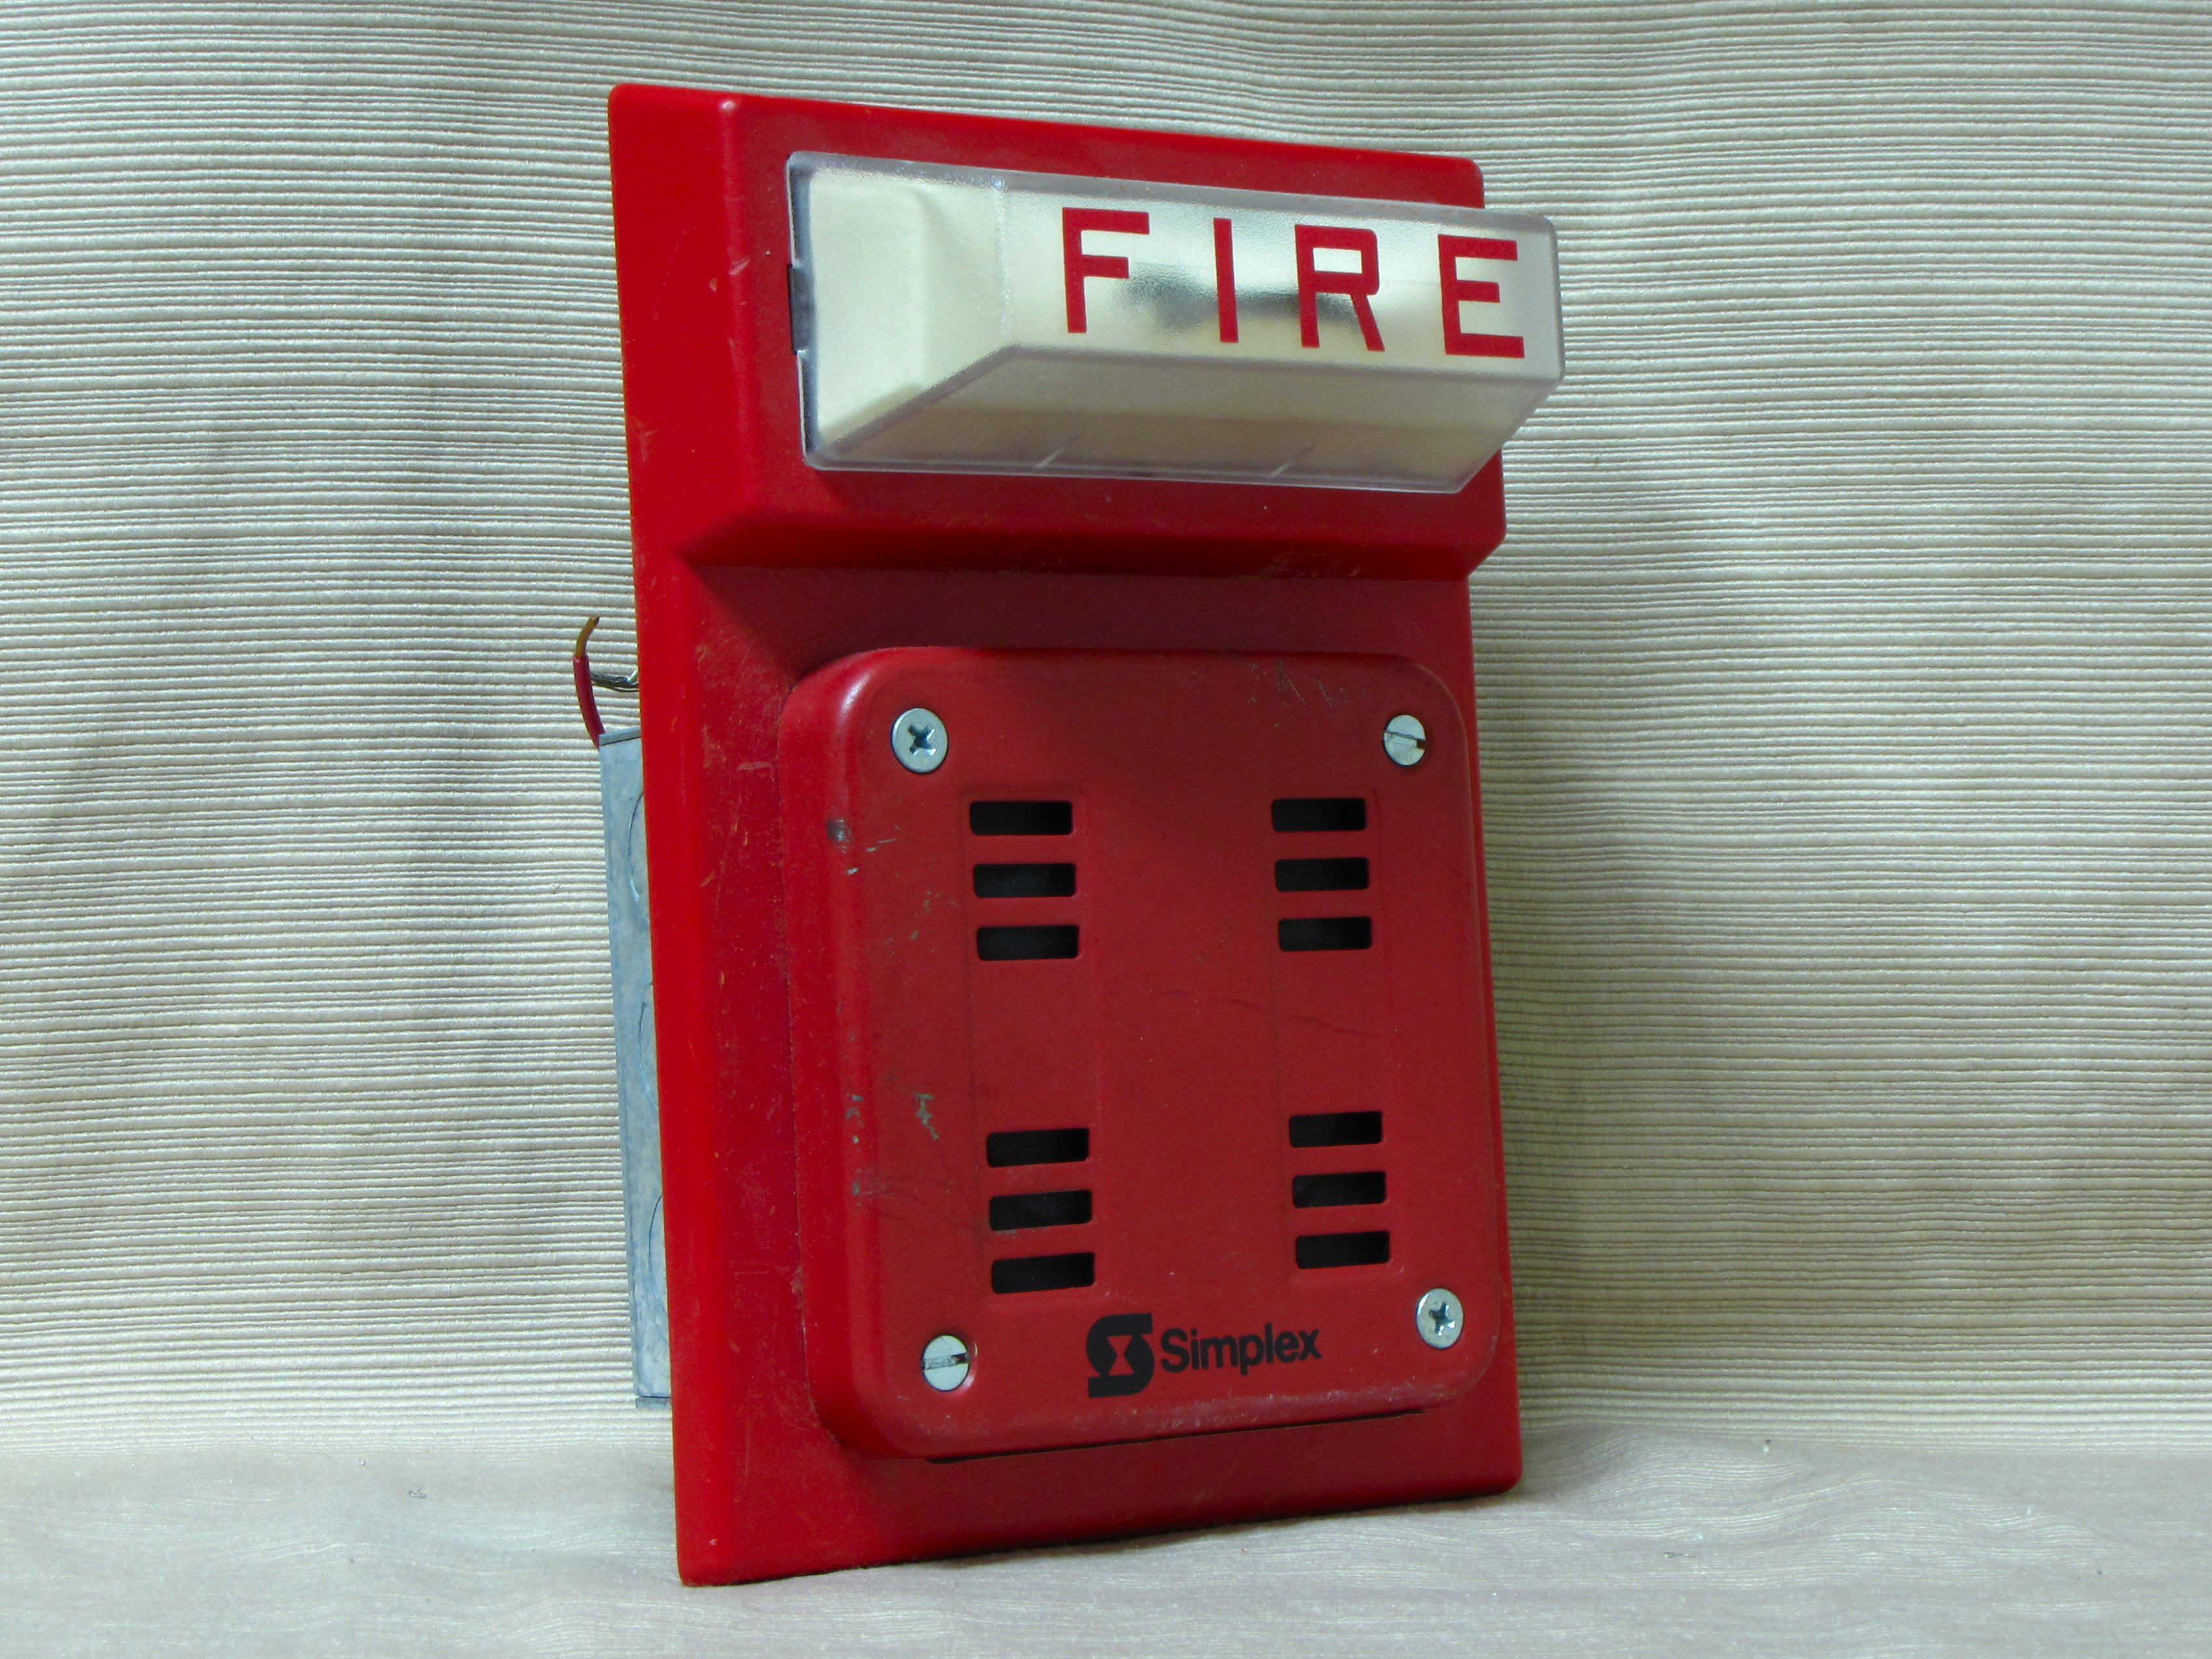 Simplex 4904 9105 in addition Barnums American Museum Burns In 1868 likewise Alarm button emergency stop fire alarm human hand siren warning icon additionally 237183 Brm Cheap Kt Alarm O Bot Ez Win in addition Dekk1. on fire alarm collection